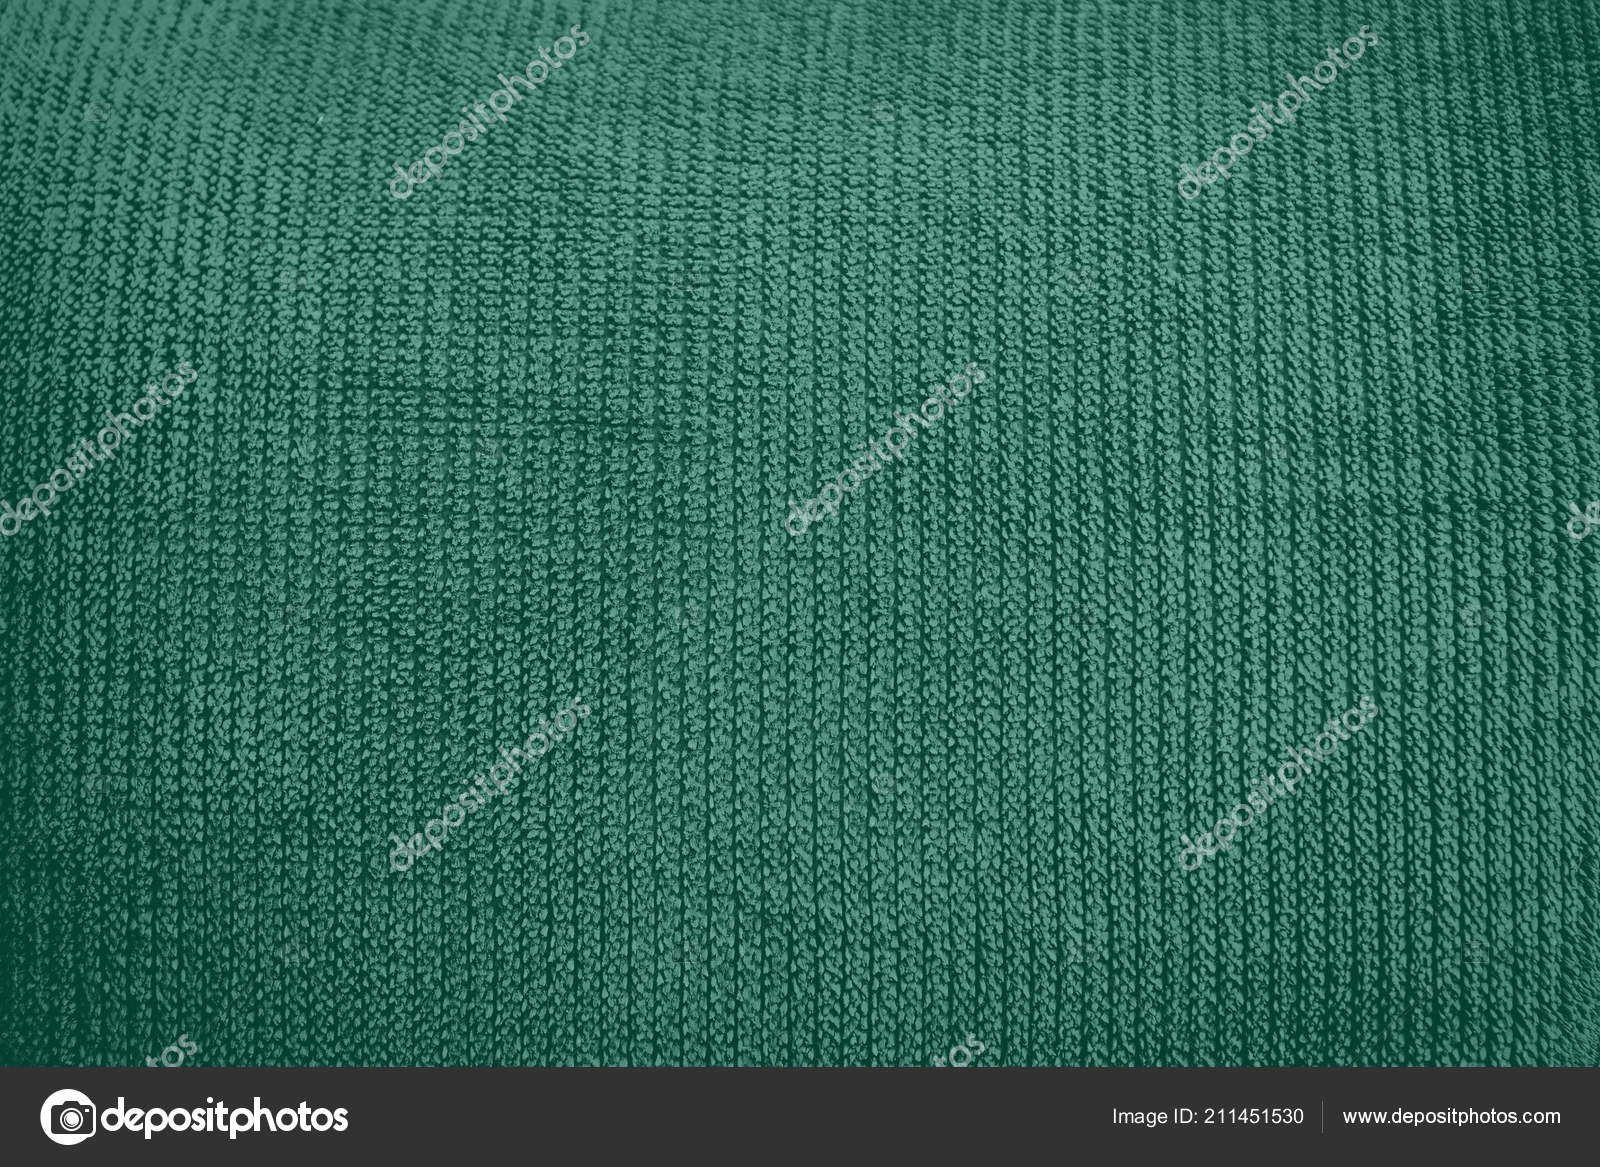 Dark Green Velvet Texture Dark Green Velvet Texture Background Green Velvet Fabric Stock Photo C Pro2audio Gmail Com 211451530